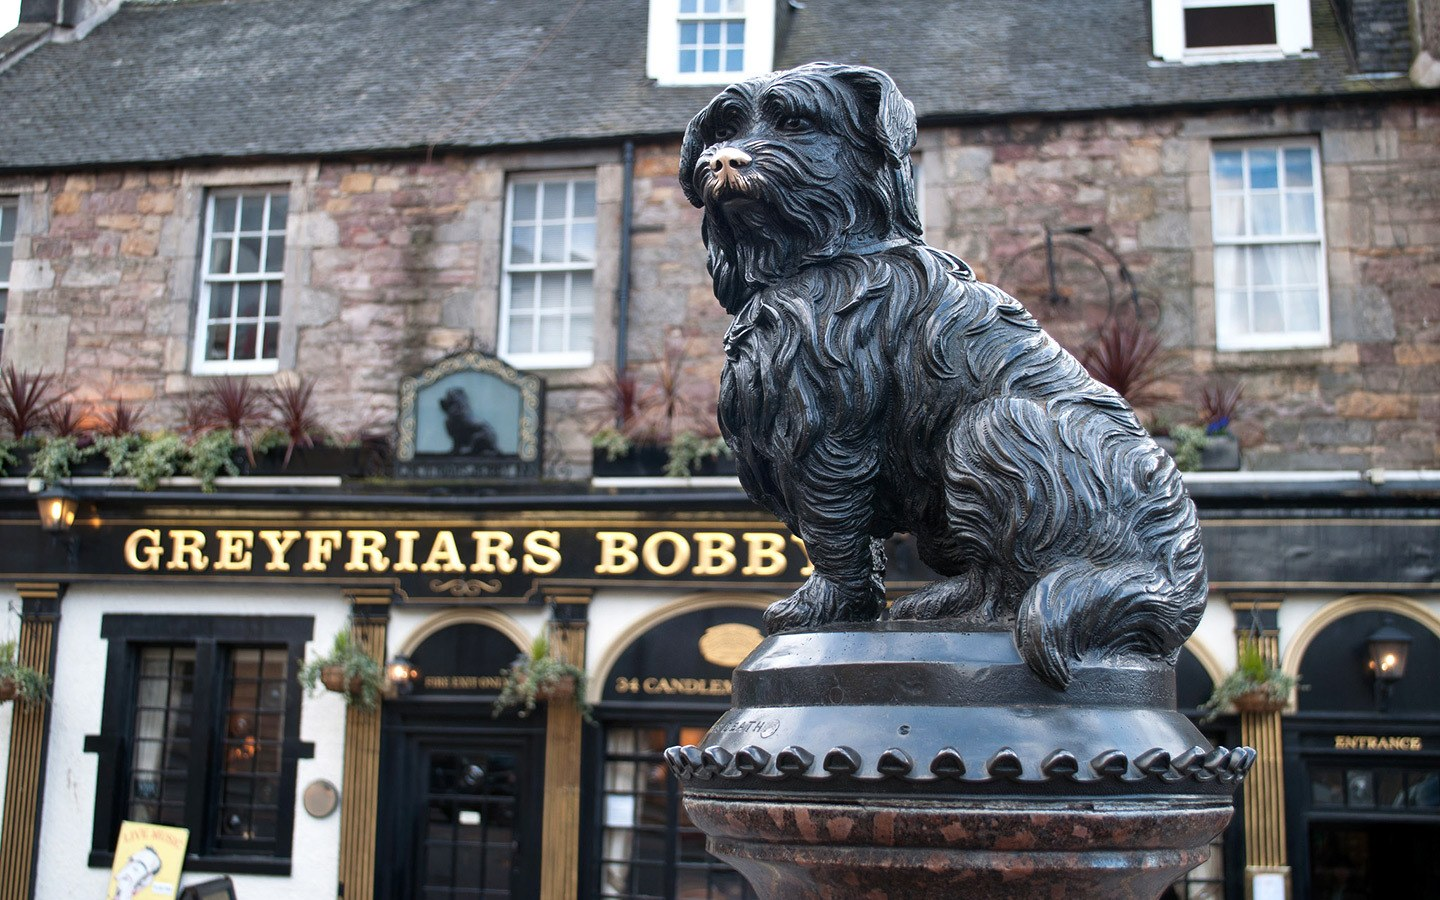 Greyfriars Bobby's statue and his namesake pub in Edinburgh